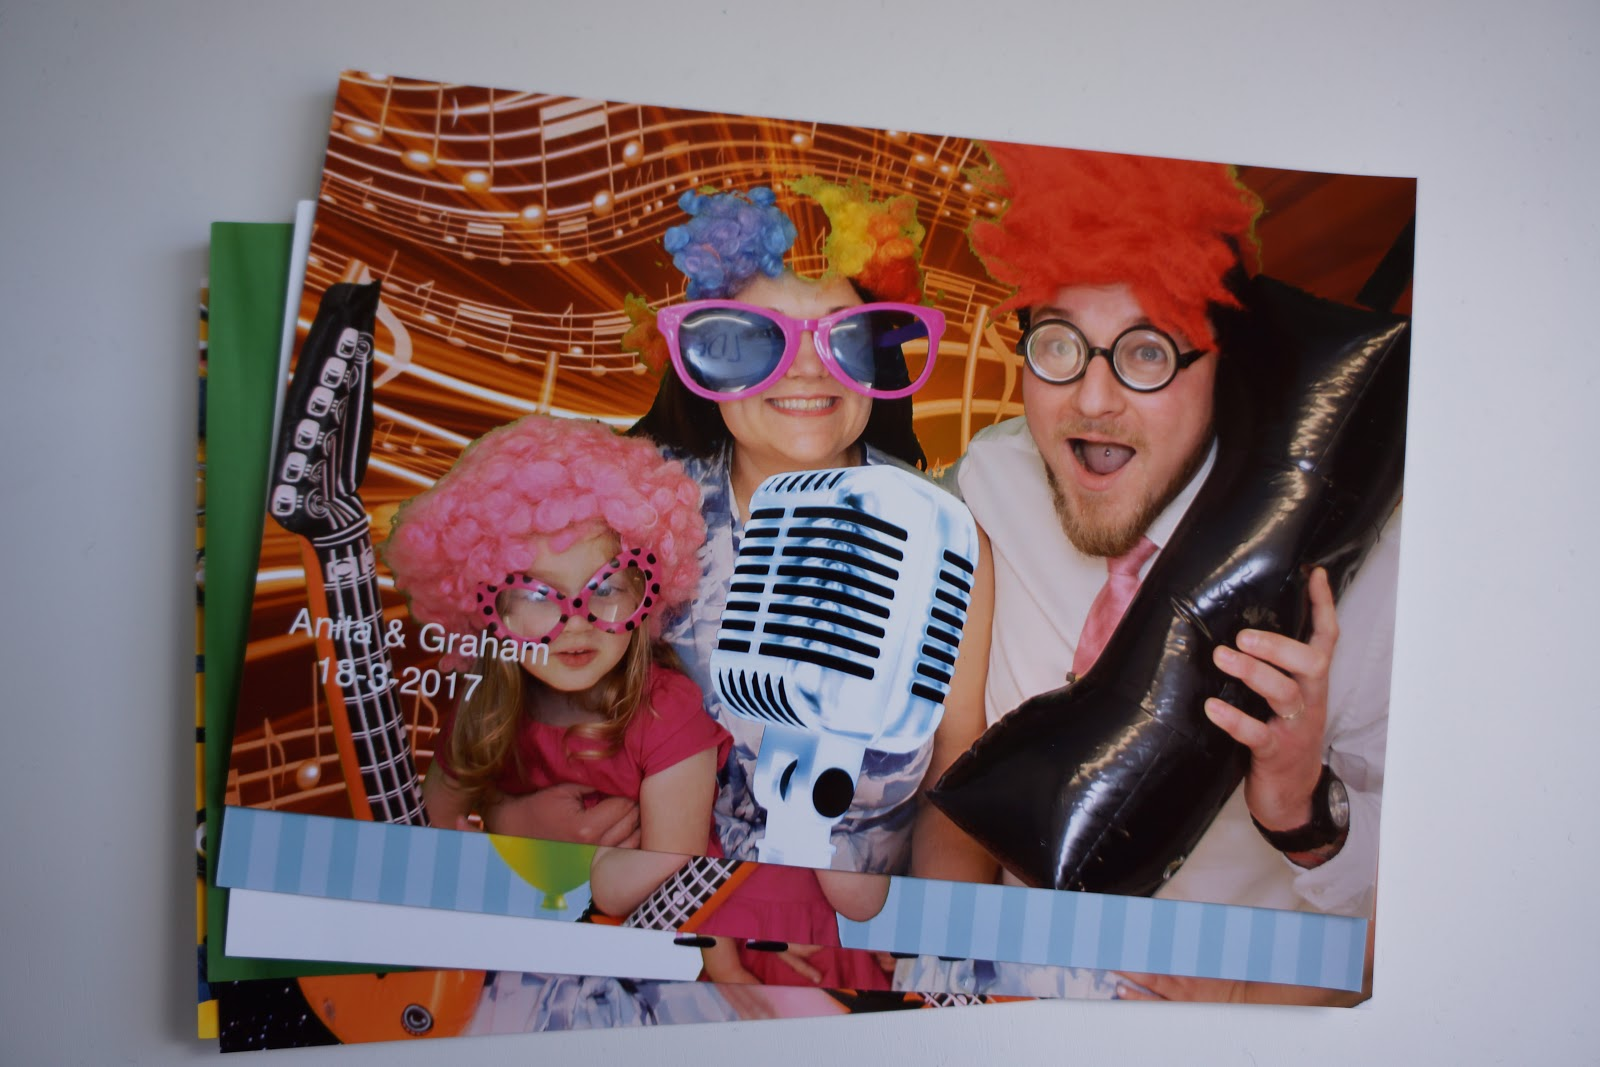 a funny family picture at a photo booth with everyone dressed as rockers